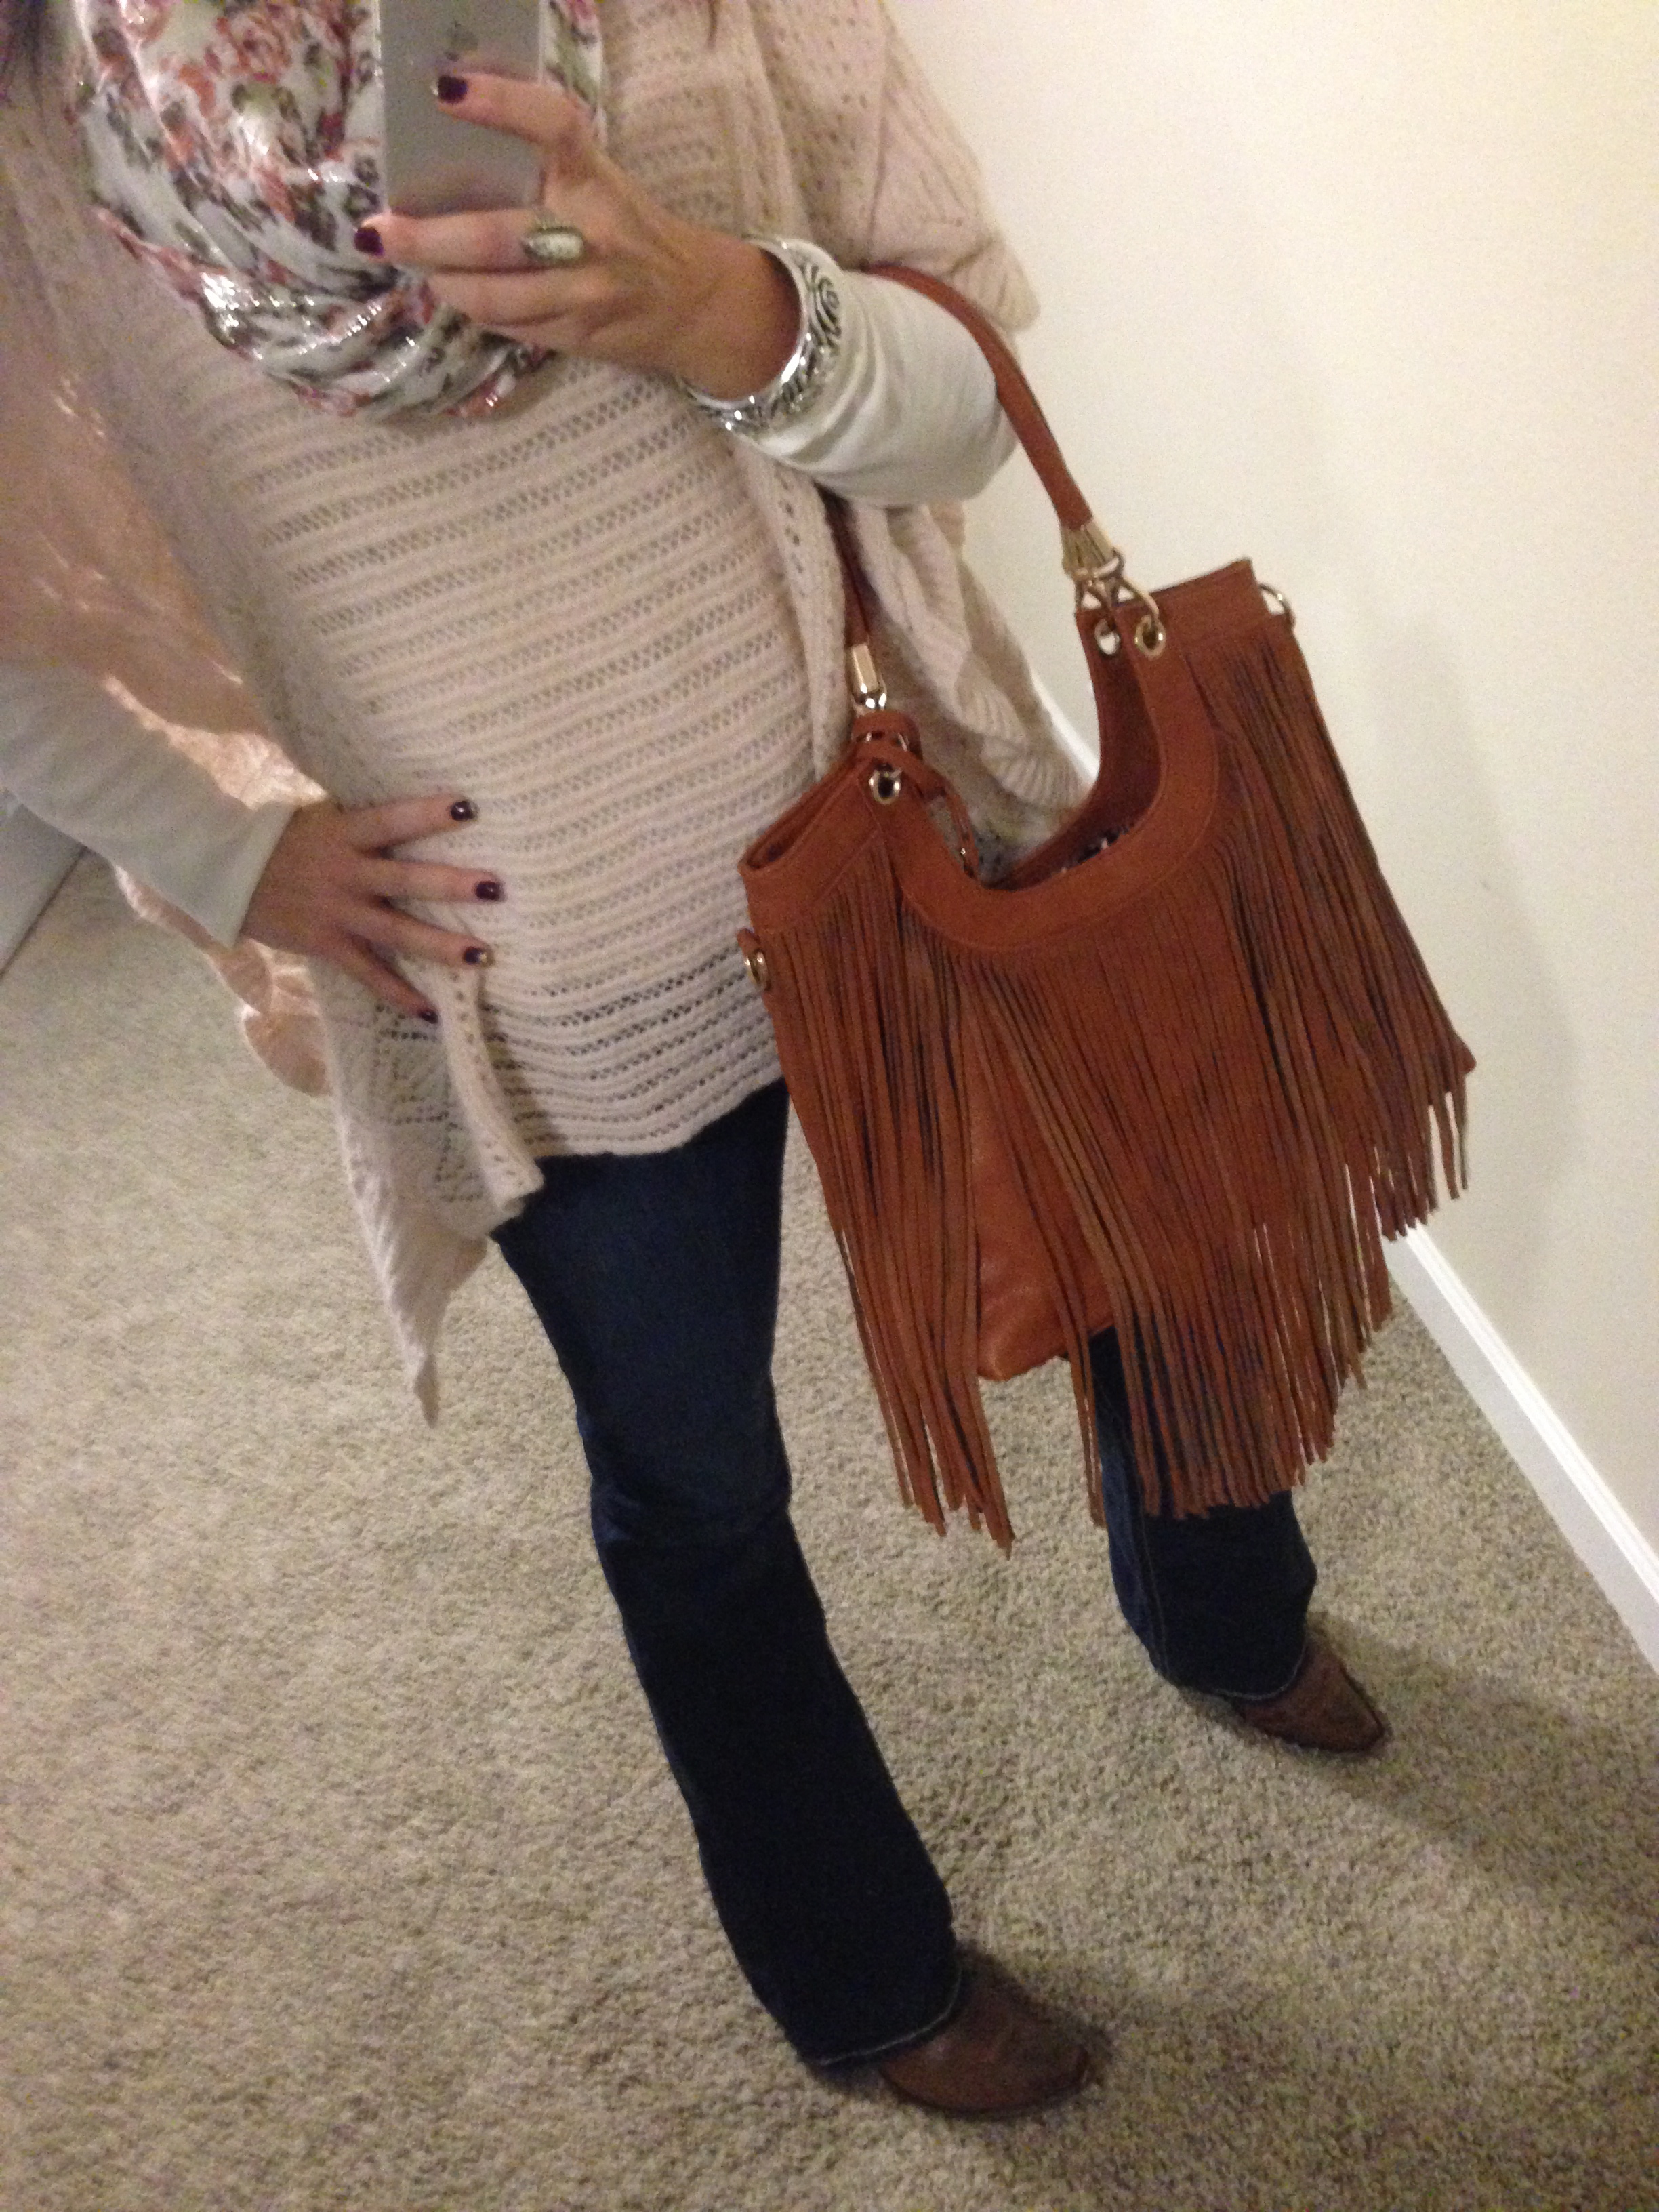 Sweater: Free People; Scarf: Charming Charlie; Shirt: Nordstrom; Boots: Old Gringo c/o Cowboy Cool; Handbag: c/o Bijuju Handbags; Watch: Michele; Bracelet: c/o Lisa Leonard; Bracelet: Stella and Dot; Ring: Euro Art Jewelers